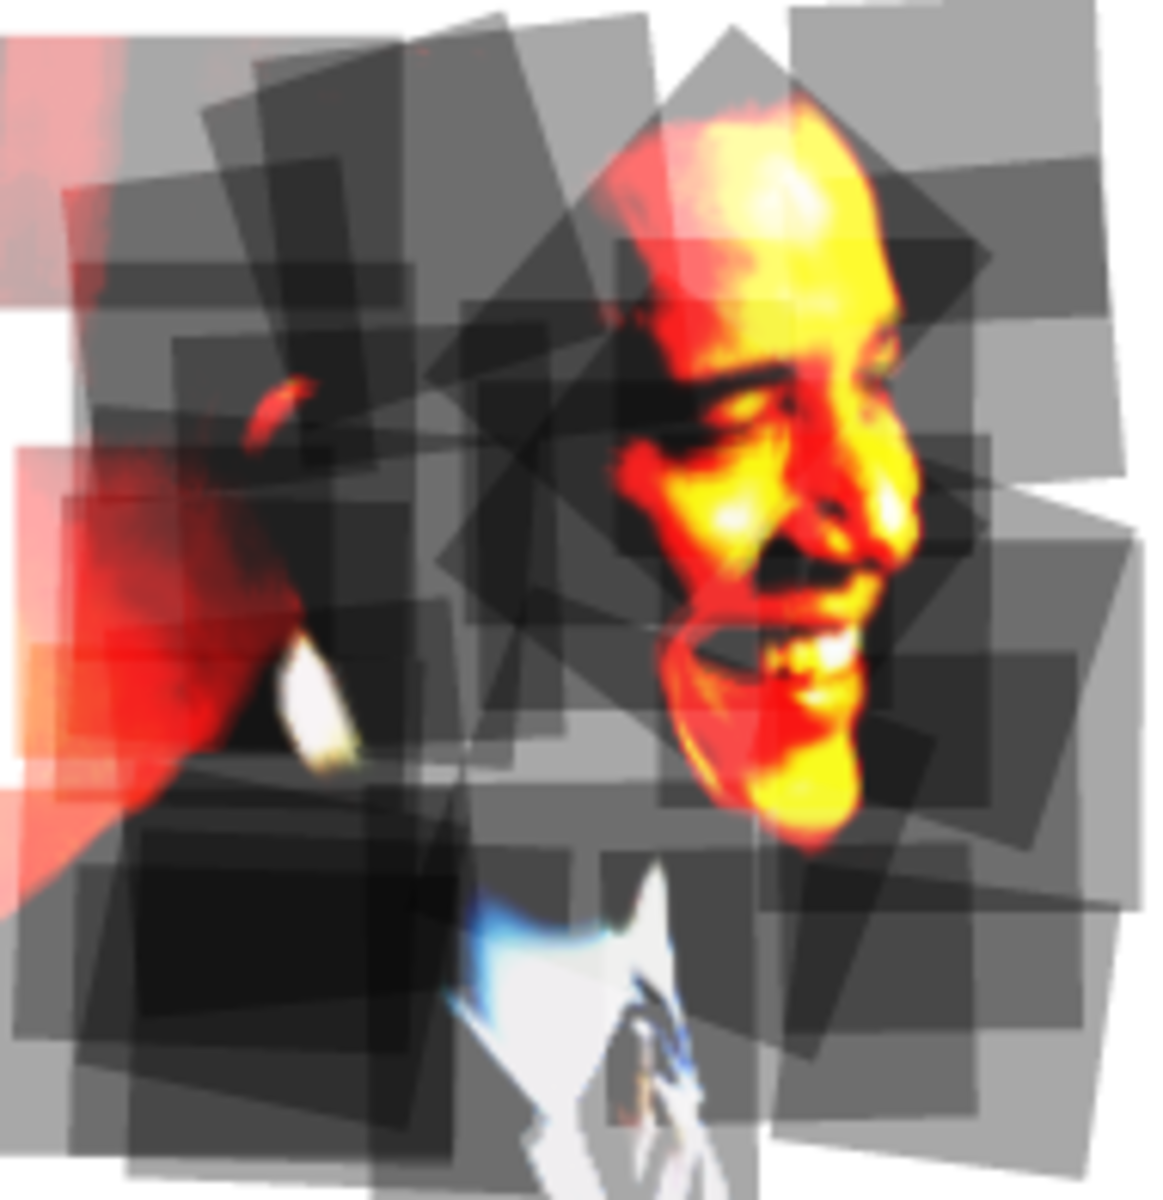 Barack Obama clip art -- unifying the pieces